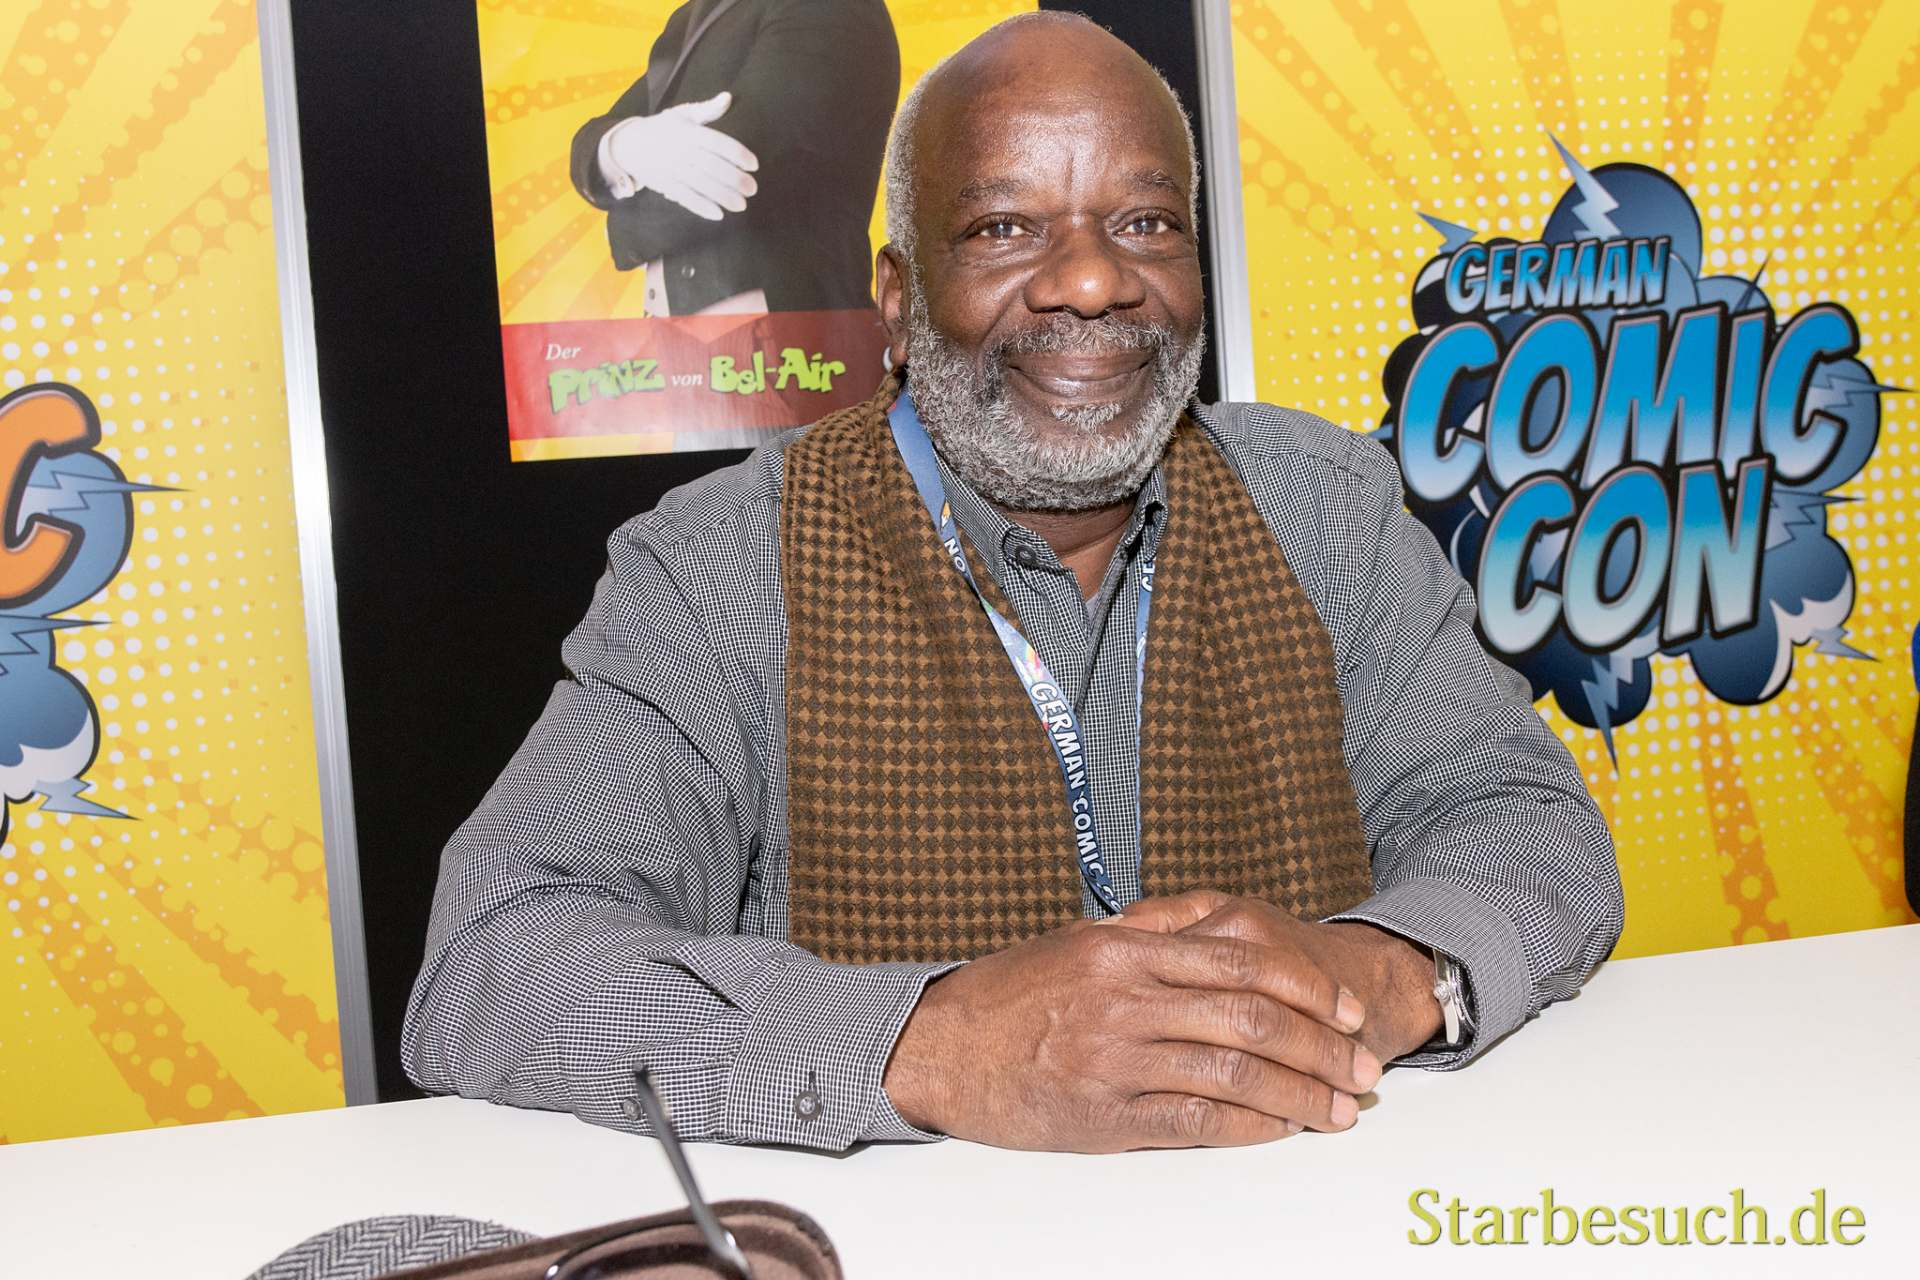 DORTMUND, GERMANY - December 1st 2018: Joseph Marcell (*1948, British actor) at German Comic Con Dortmund, a two day fan convention